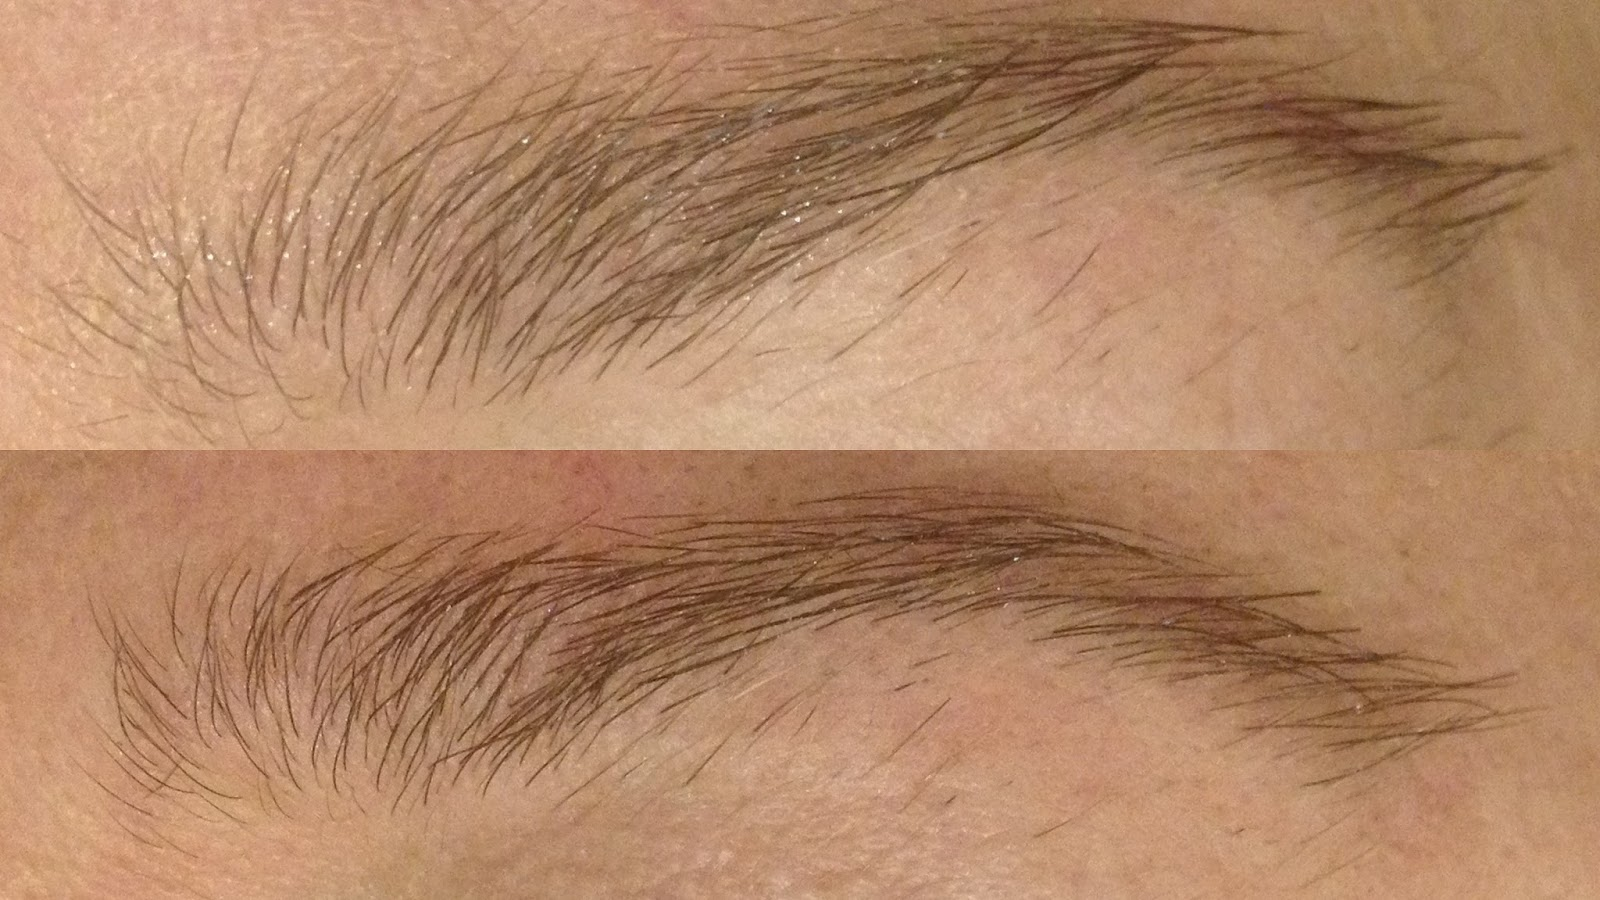 How To Shape Your Brows For A Natural Look She Might Be Loved